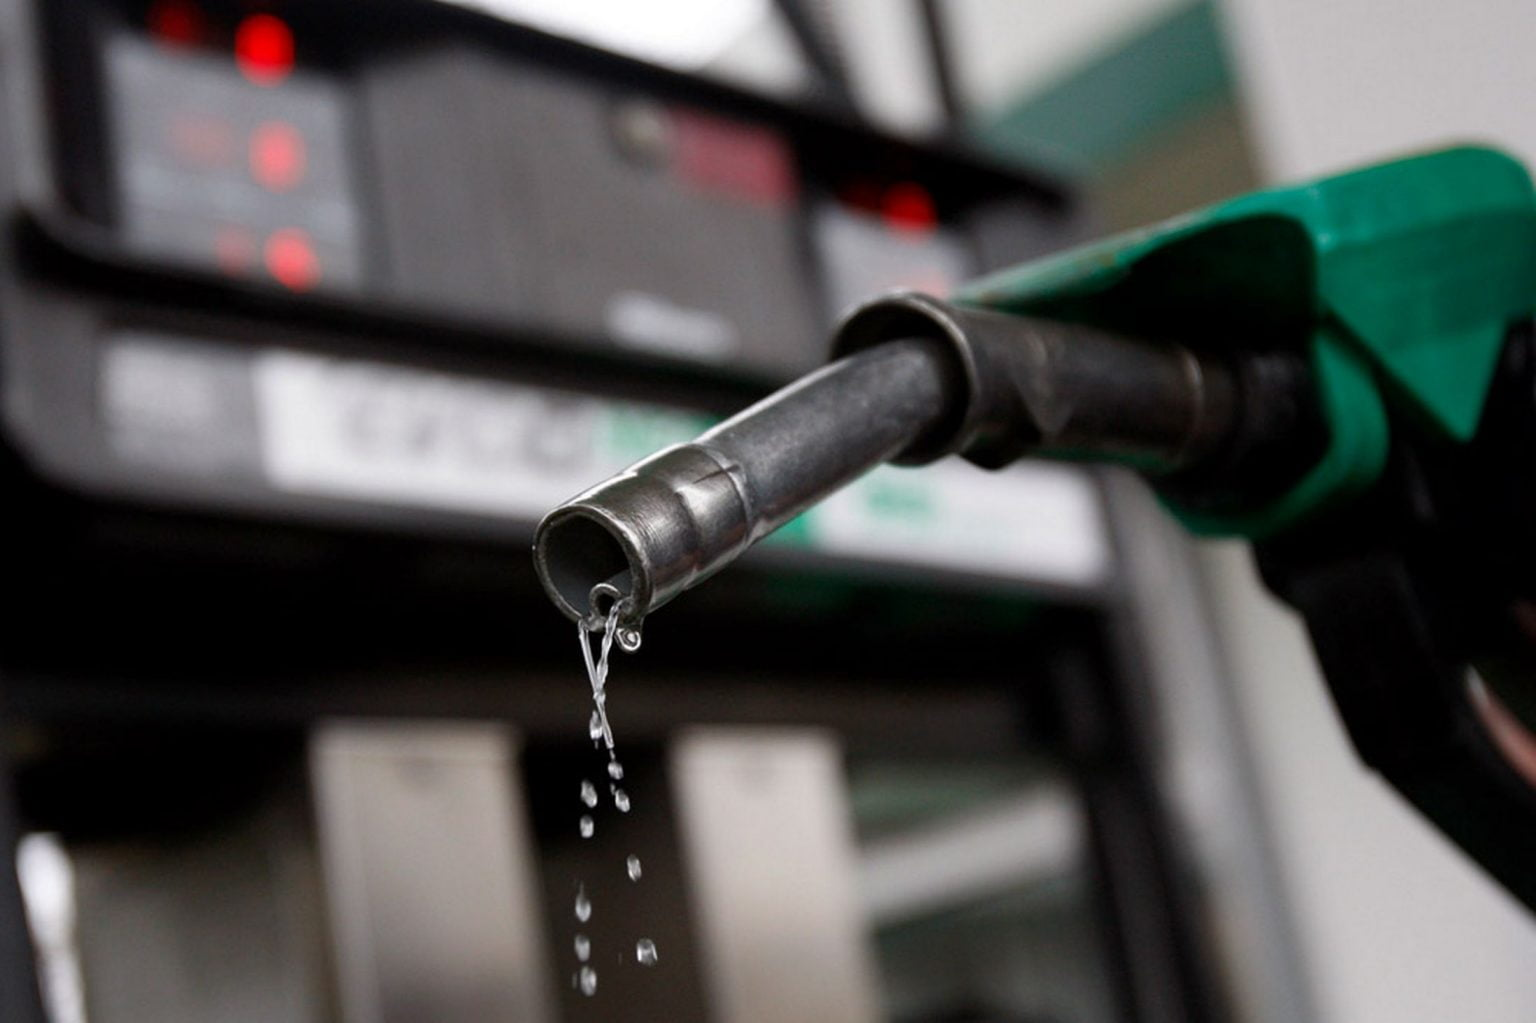 Petrol Price Will Rise To N1,000 Per Litre When Petrol Subsidy Ends — DPR